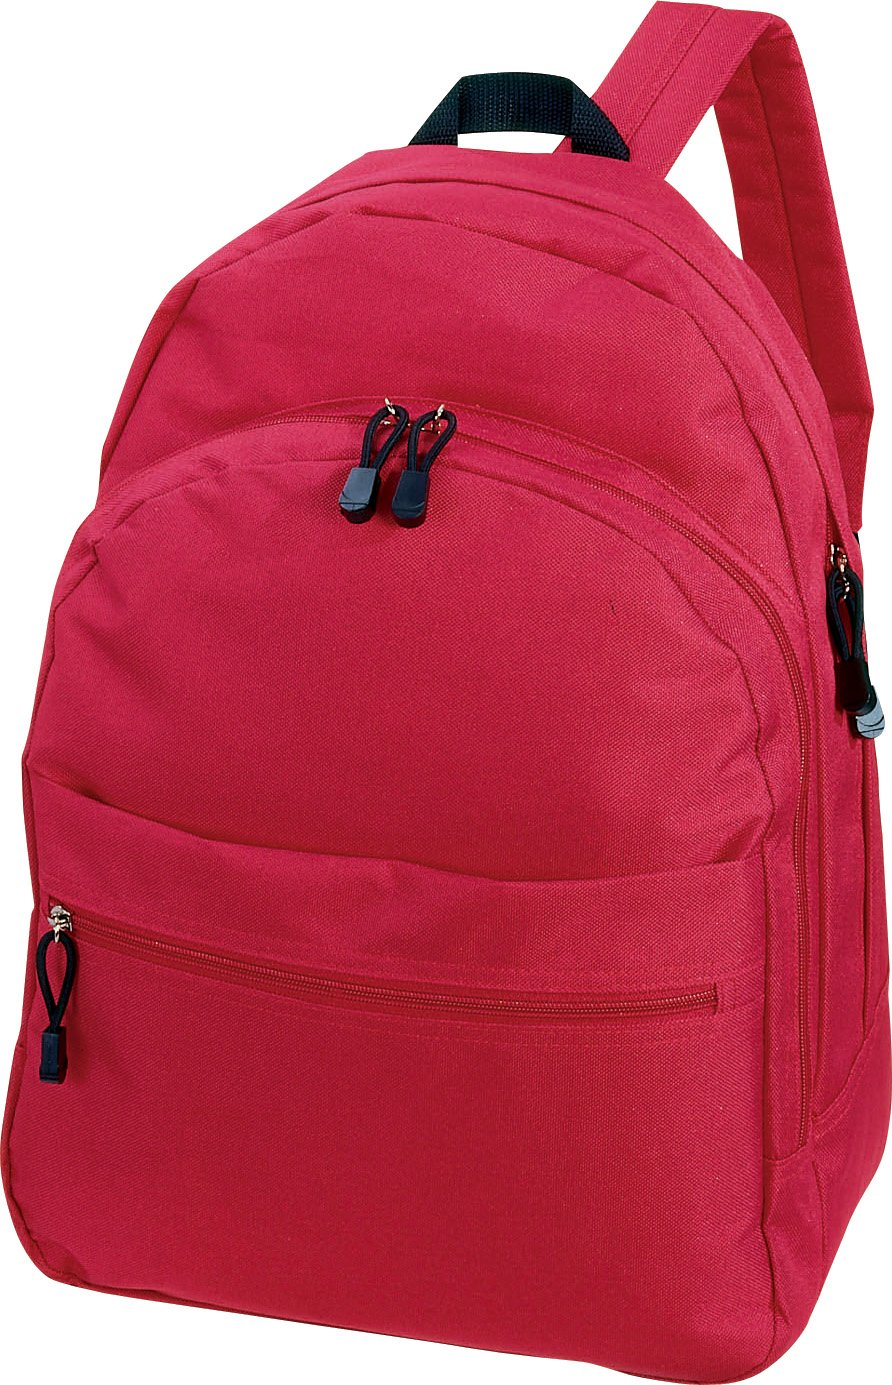 CENTRIX  TREND  RUCKSACK BACKPACK - 11 GREAT COLOURS  1540892872 ... c4a8da7f66983